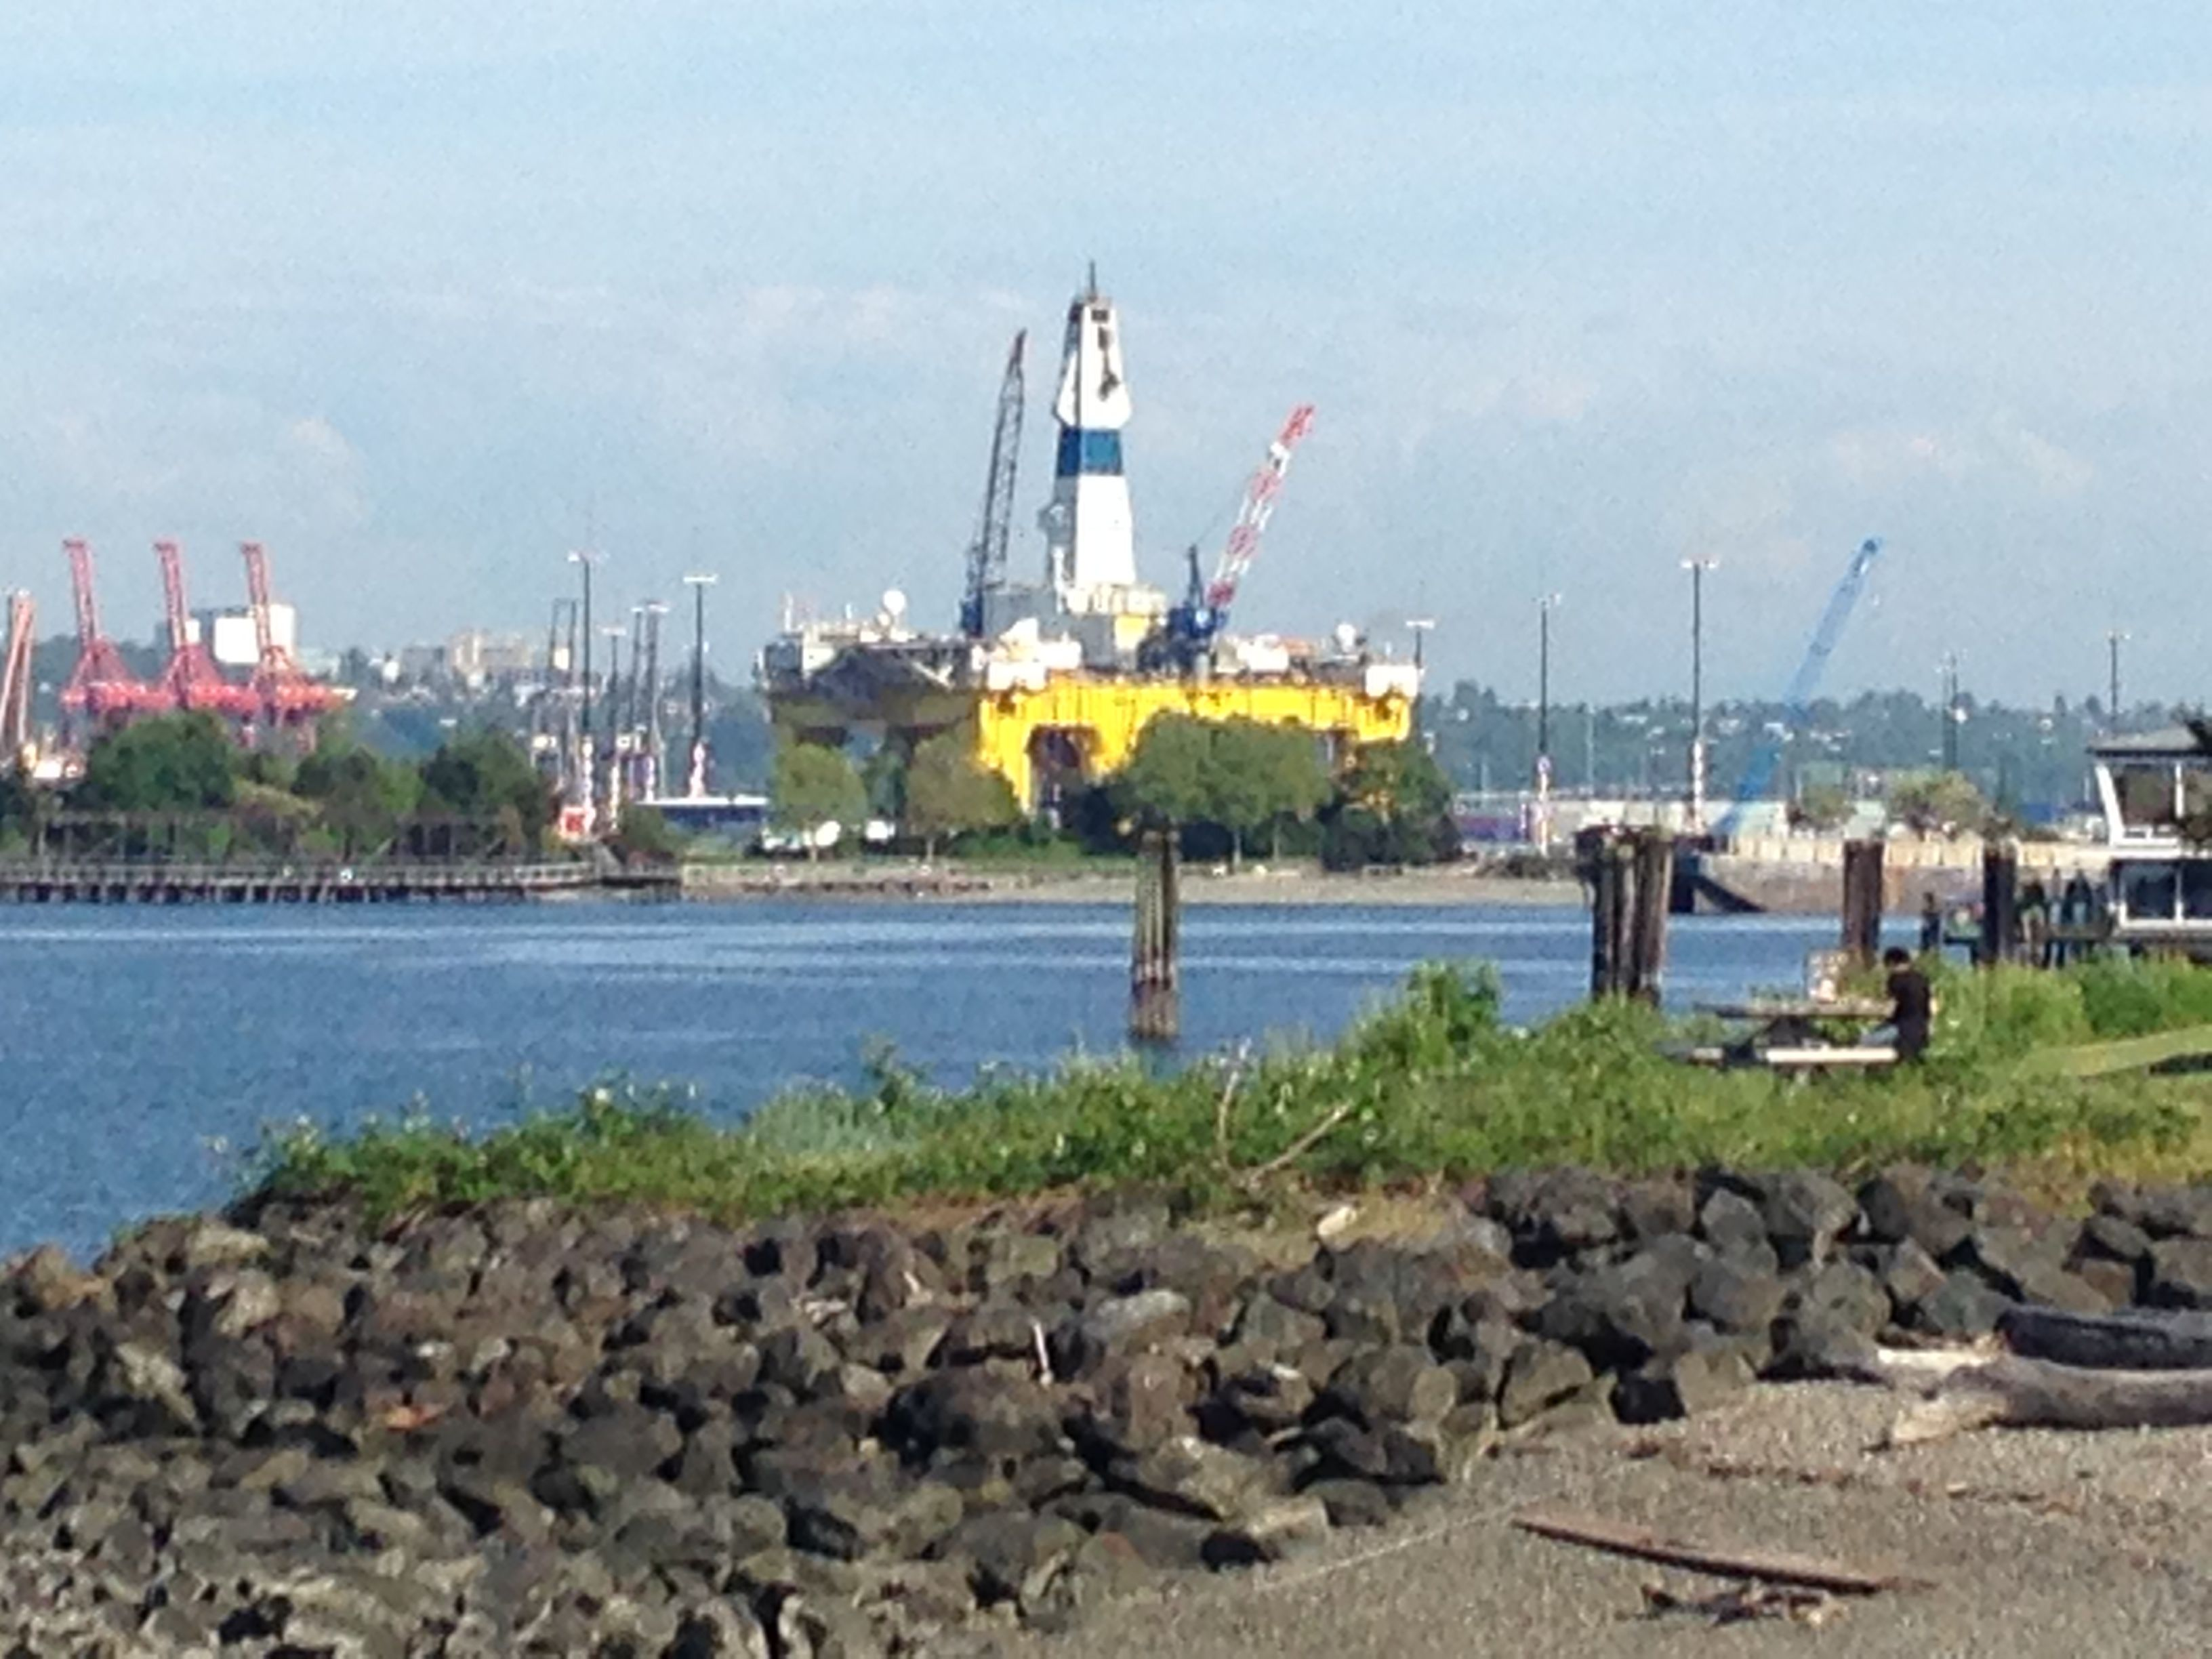 The Polar Pioneer, Shell's controversial oil rig